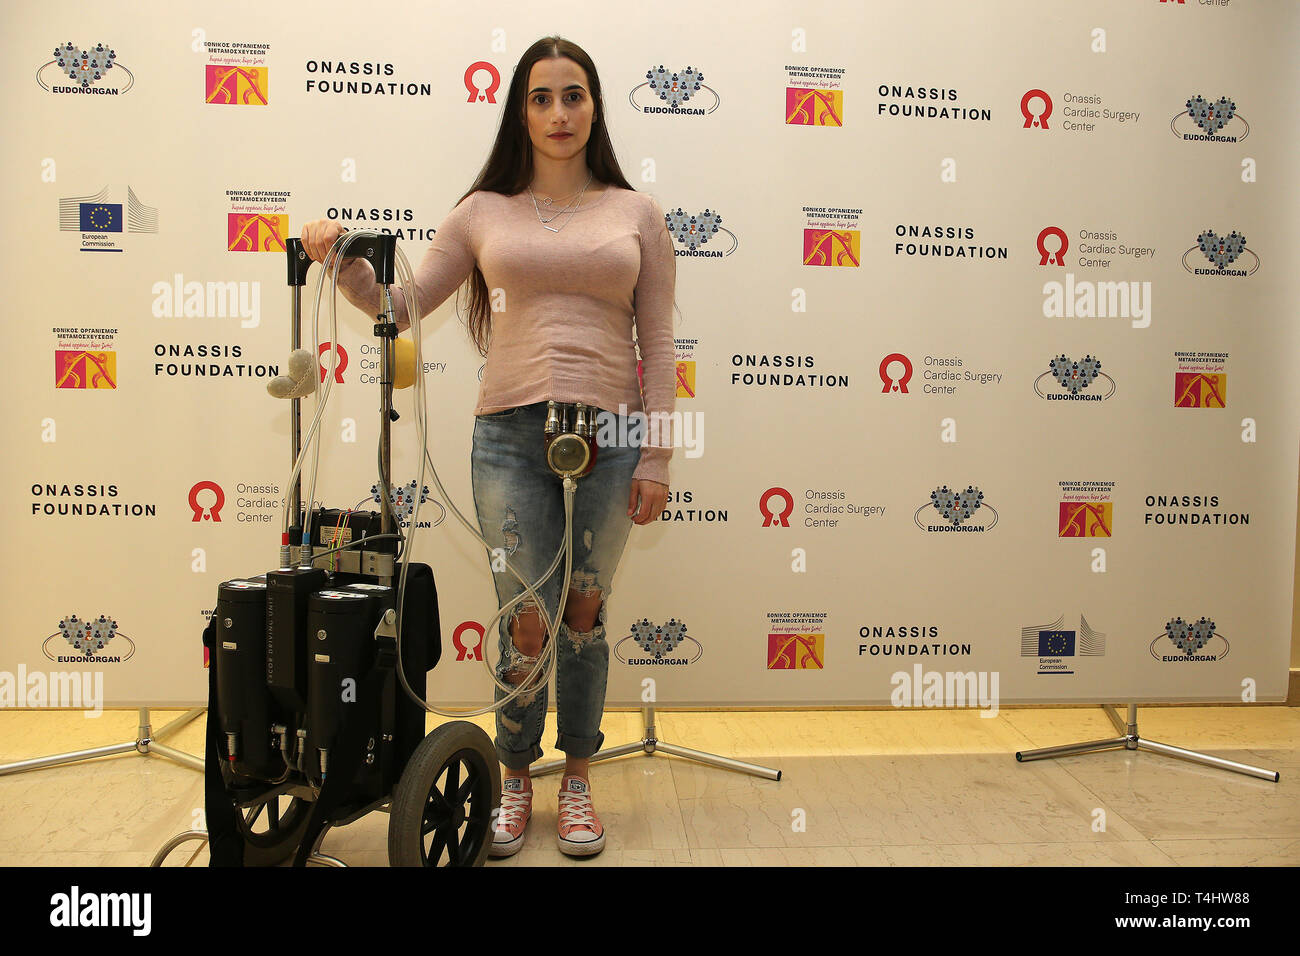 Athens, Greece. 15th Apr, 2019. Eleana Vrozidi, 28, who has been on the waiting list for a transplant operation for three years and two months, attends the Hellenic Transplant Organization's social awareness event in Athens, Greece, on April 15, 2019. Greece aims to double the rate of human organ donations for transplants within the next two years, the President of the Hellenic Transplant Organization (EOM), Andreas Karabinis, told Xinhua on Monday. Credit: Marios Lolos/Xinhua/Alamy Live News - Stock Image